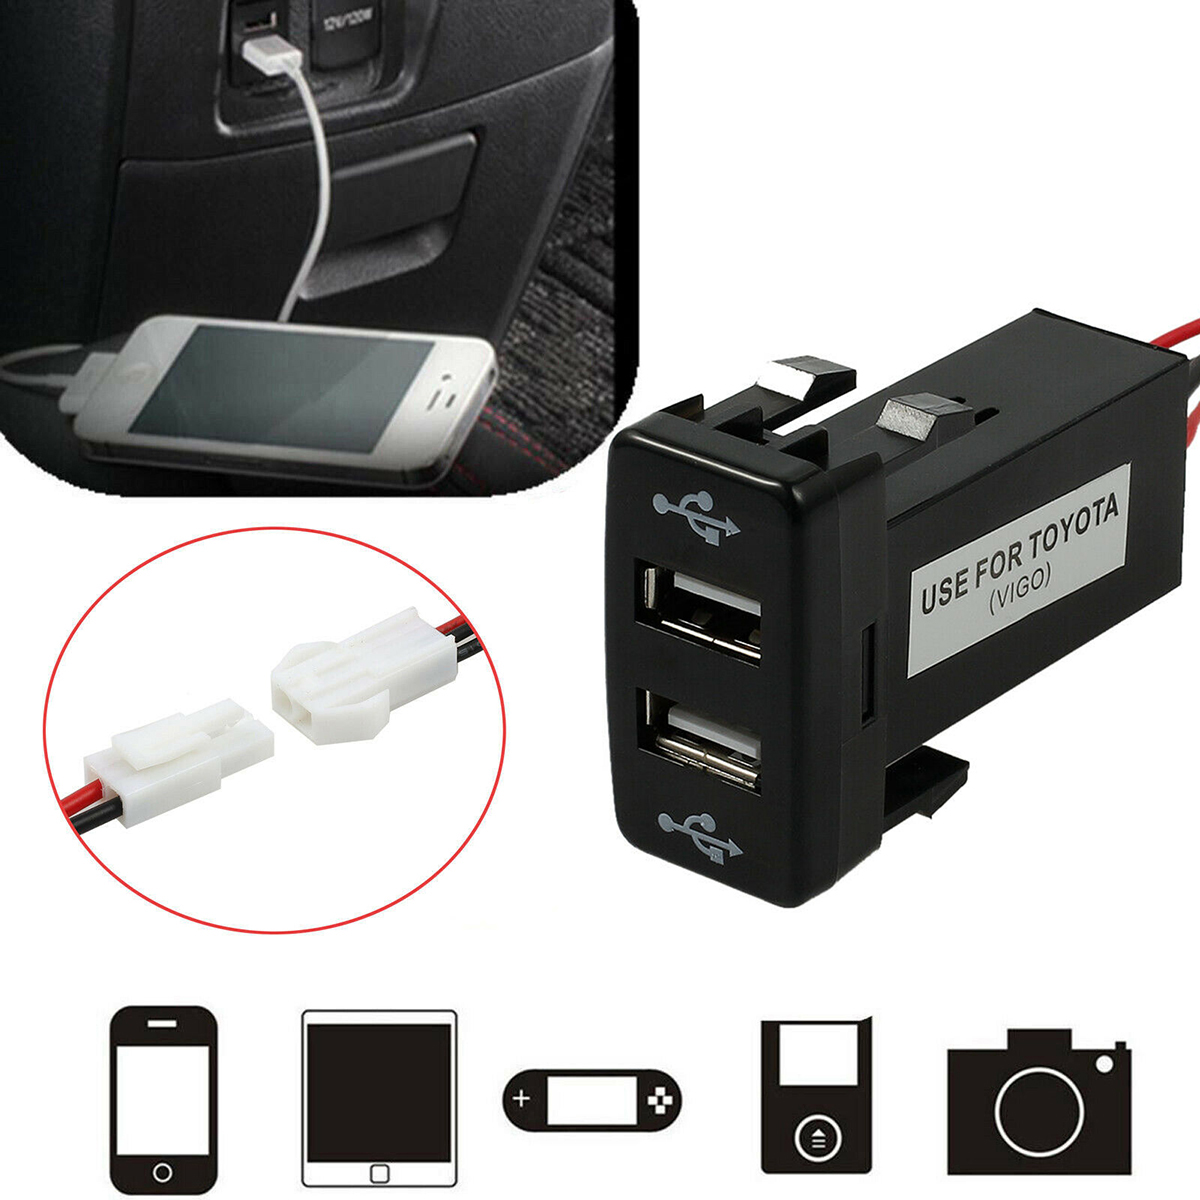 12V Dual USB Port Car USB Charger 2 Port Charger Plug Adapter For Toyota For Most Mobile Phone Tablet DVR Max Current Of 4.2A